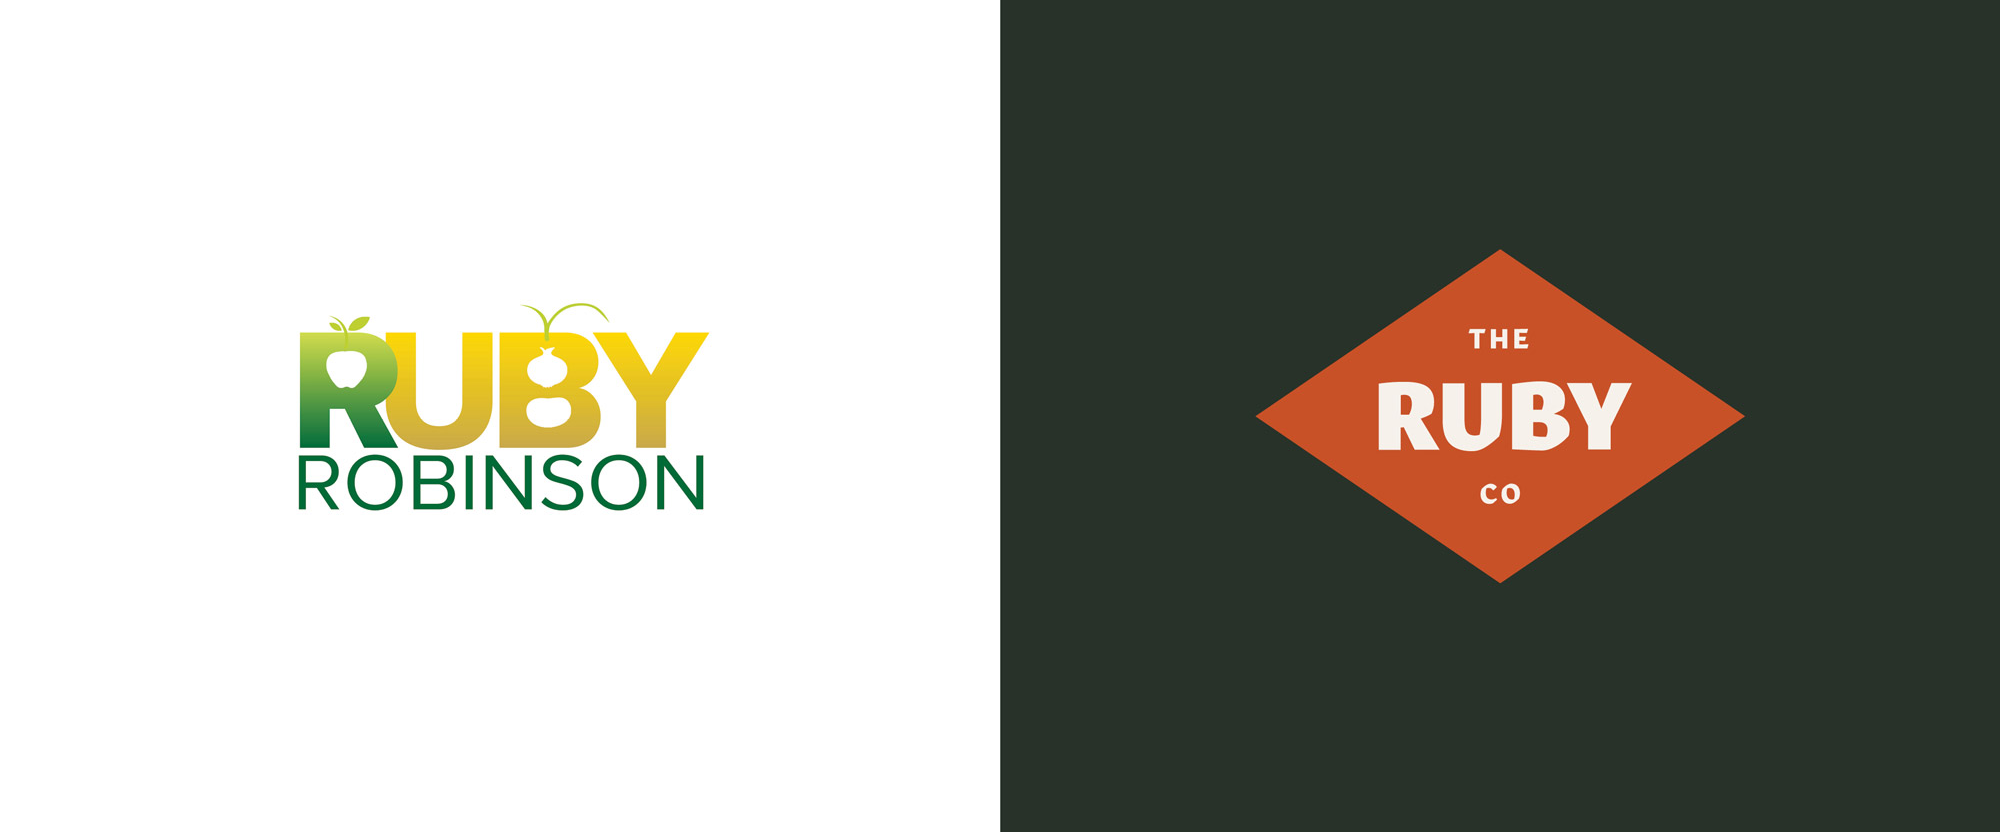 New Name, Logo, and Identity for The Ruby Company by One Design Company